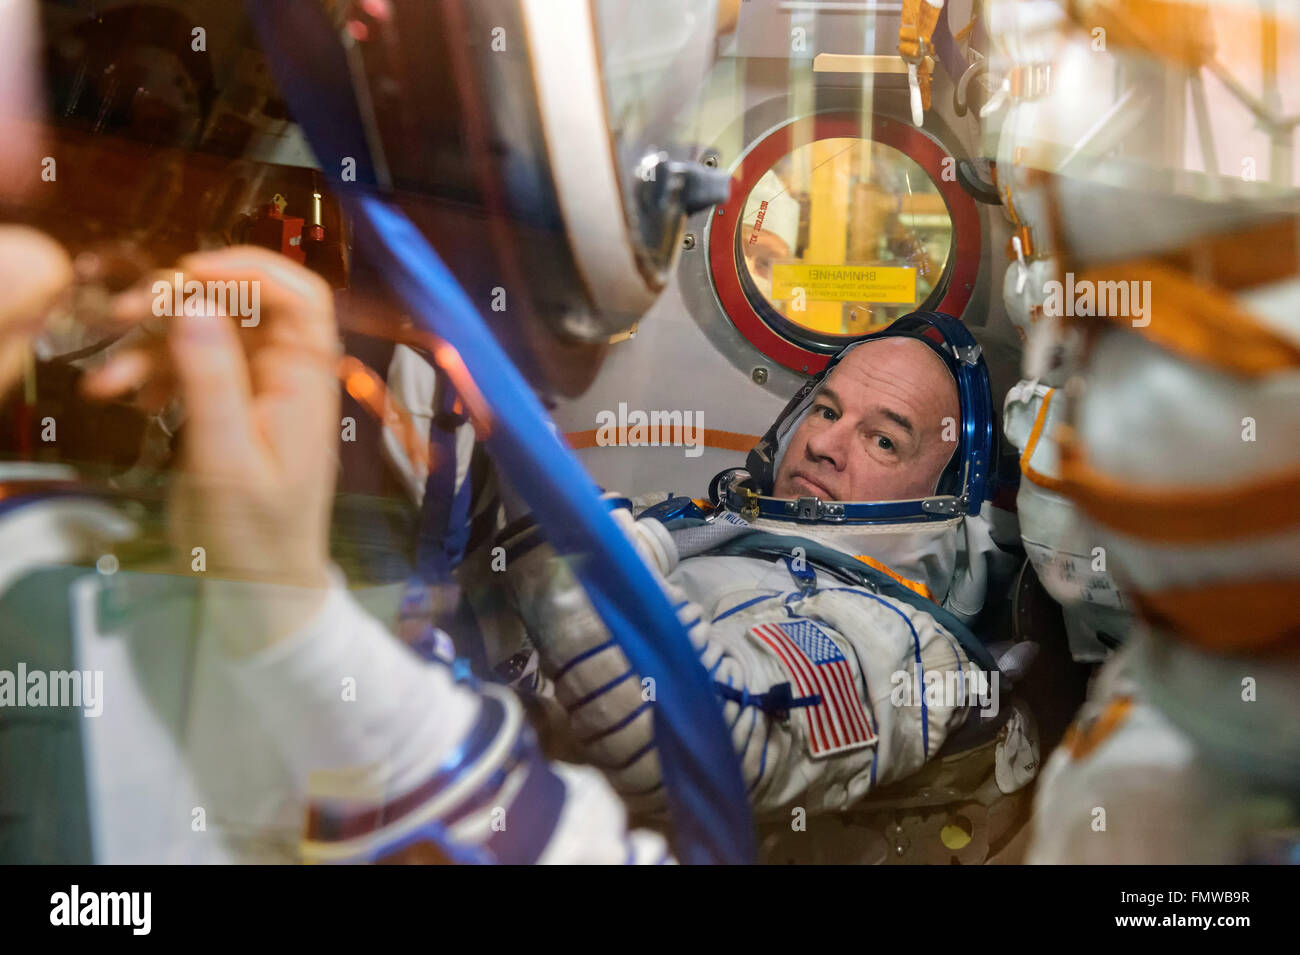 International Space Station Expedition 47 astronaut Jeff Williams of NASA inside the Soyuz TMA-20M spacecraft during Stock Photo